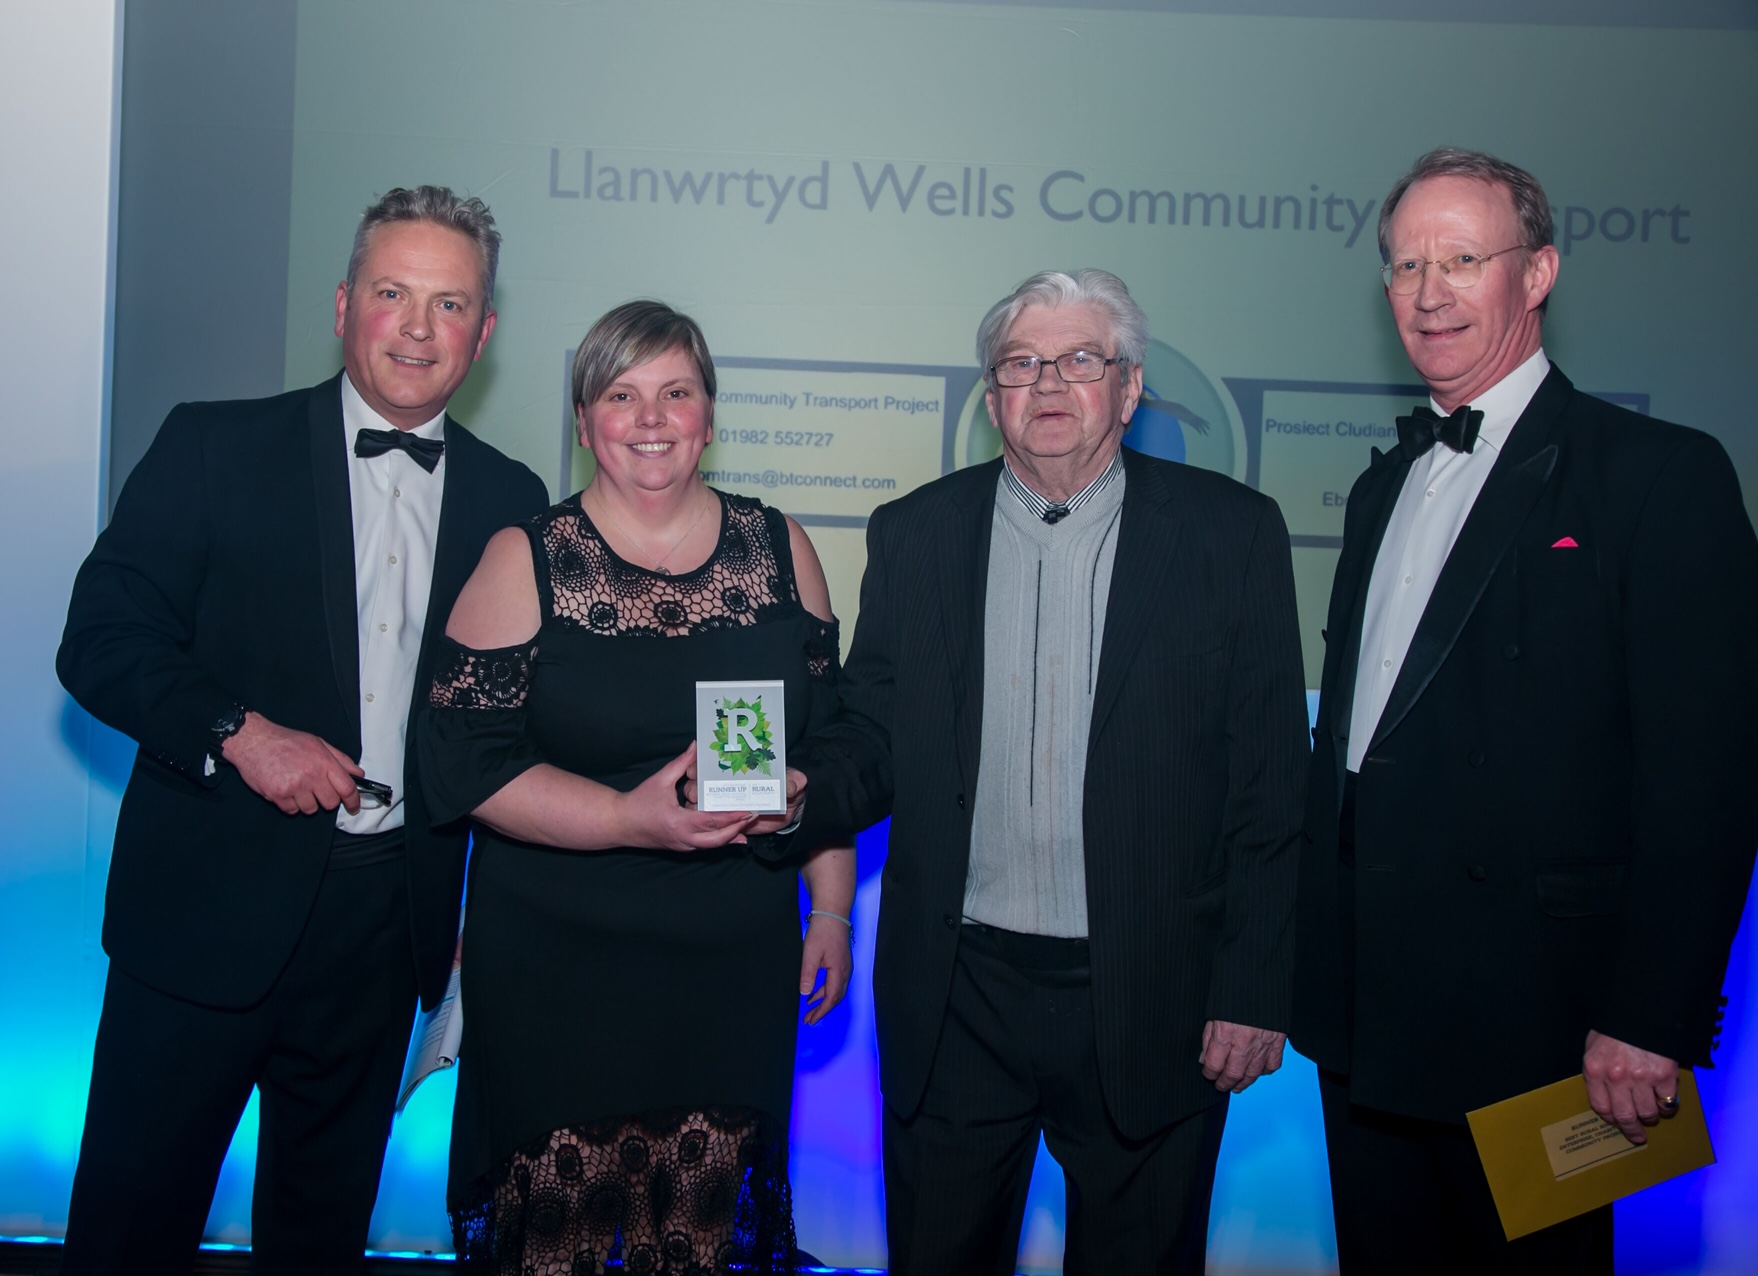 Rural Business Award 2020 accepted by Llanwrtyd Wells Community Transport